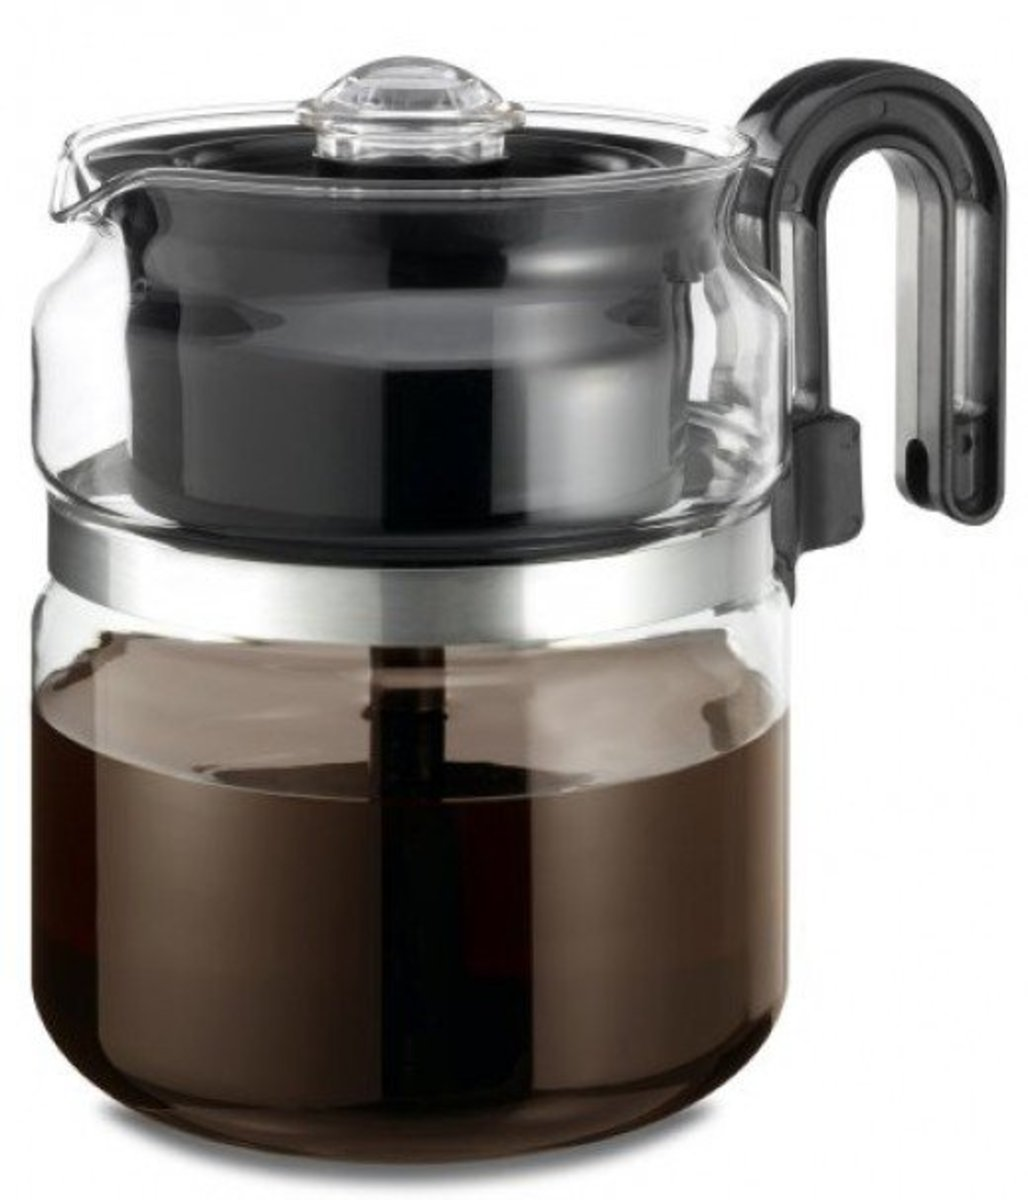 best-stovetop-coffee-percolator-2014-top-5-recommendations